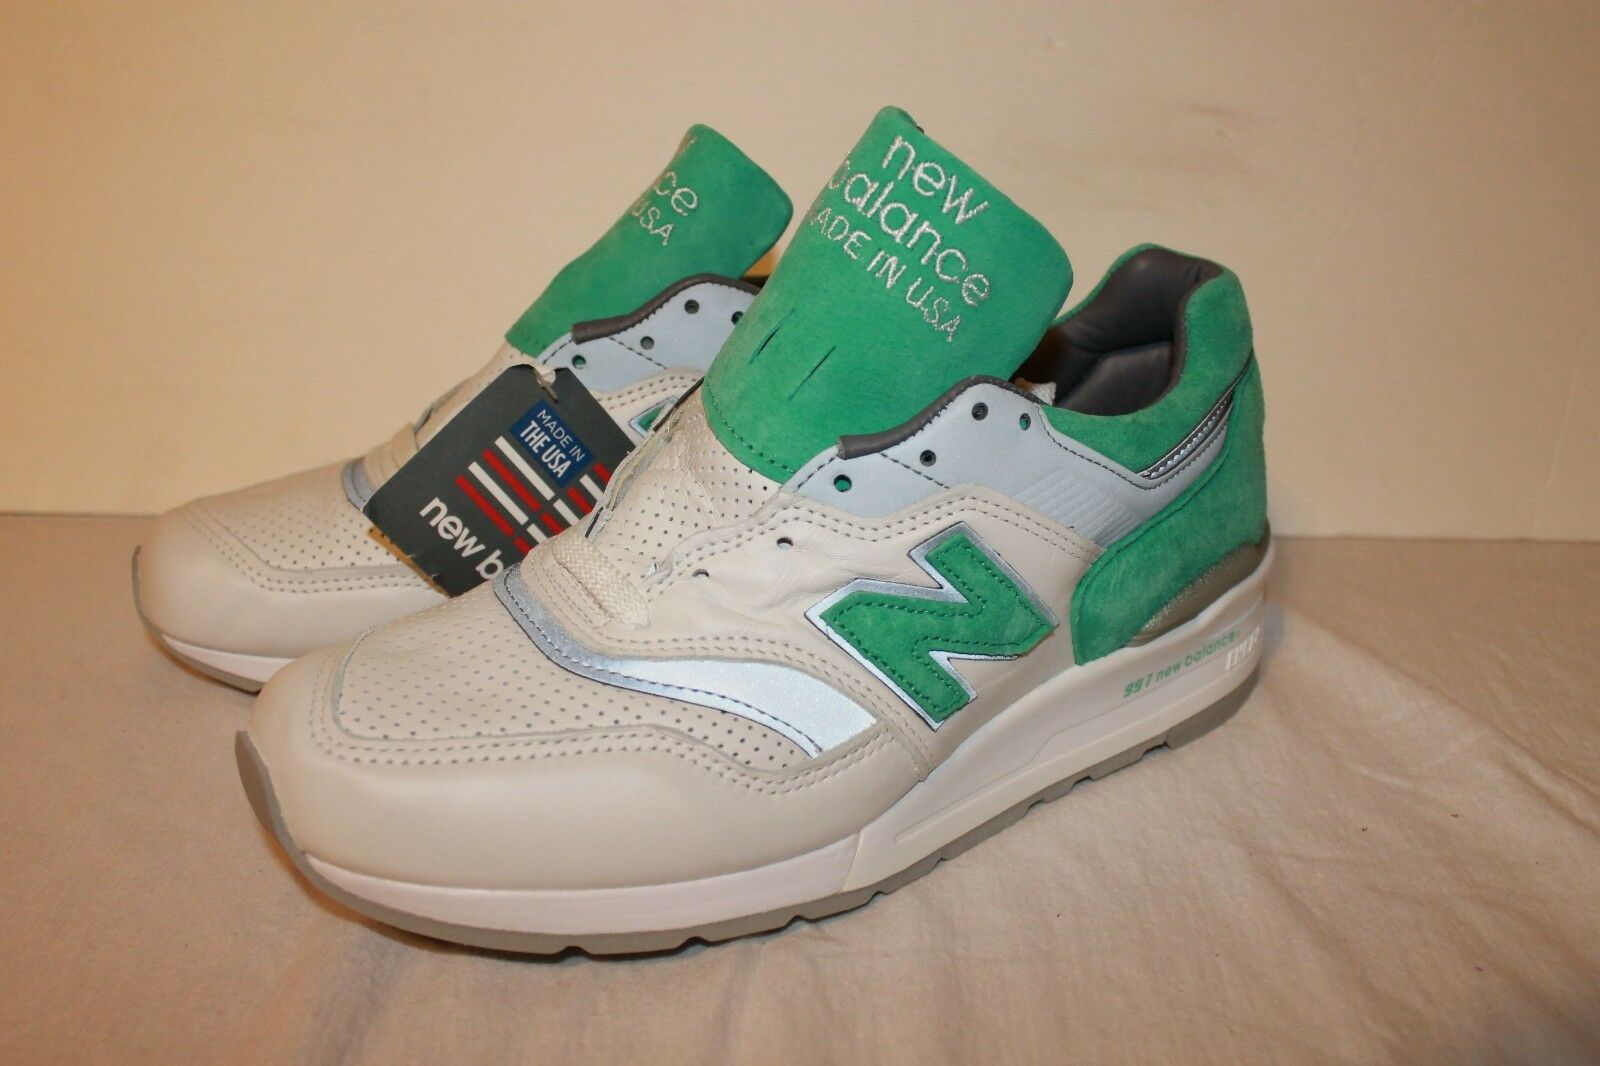 New Balance 997 Made In The USA M997CMA Concepts White Mint Green Fieg Concepts M997CMA Size 9 8595cf